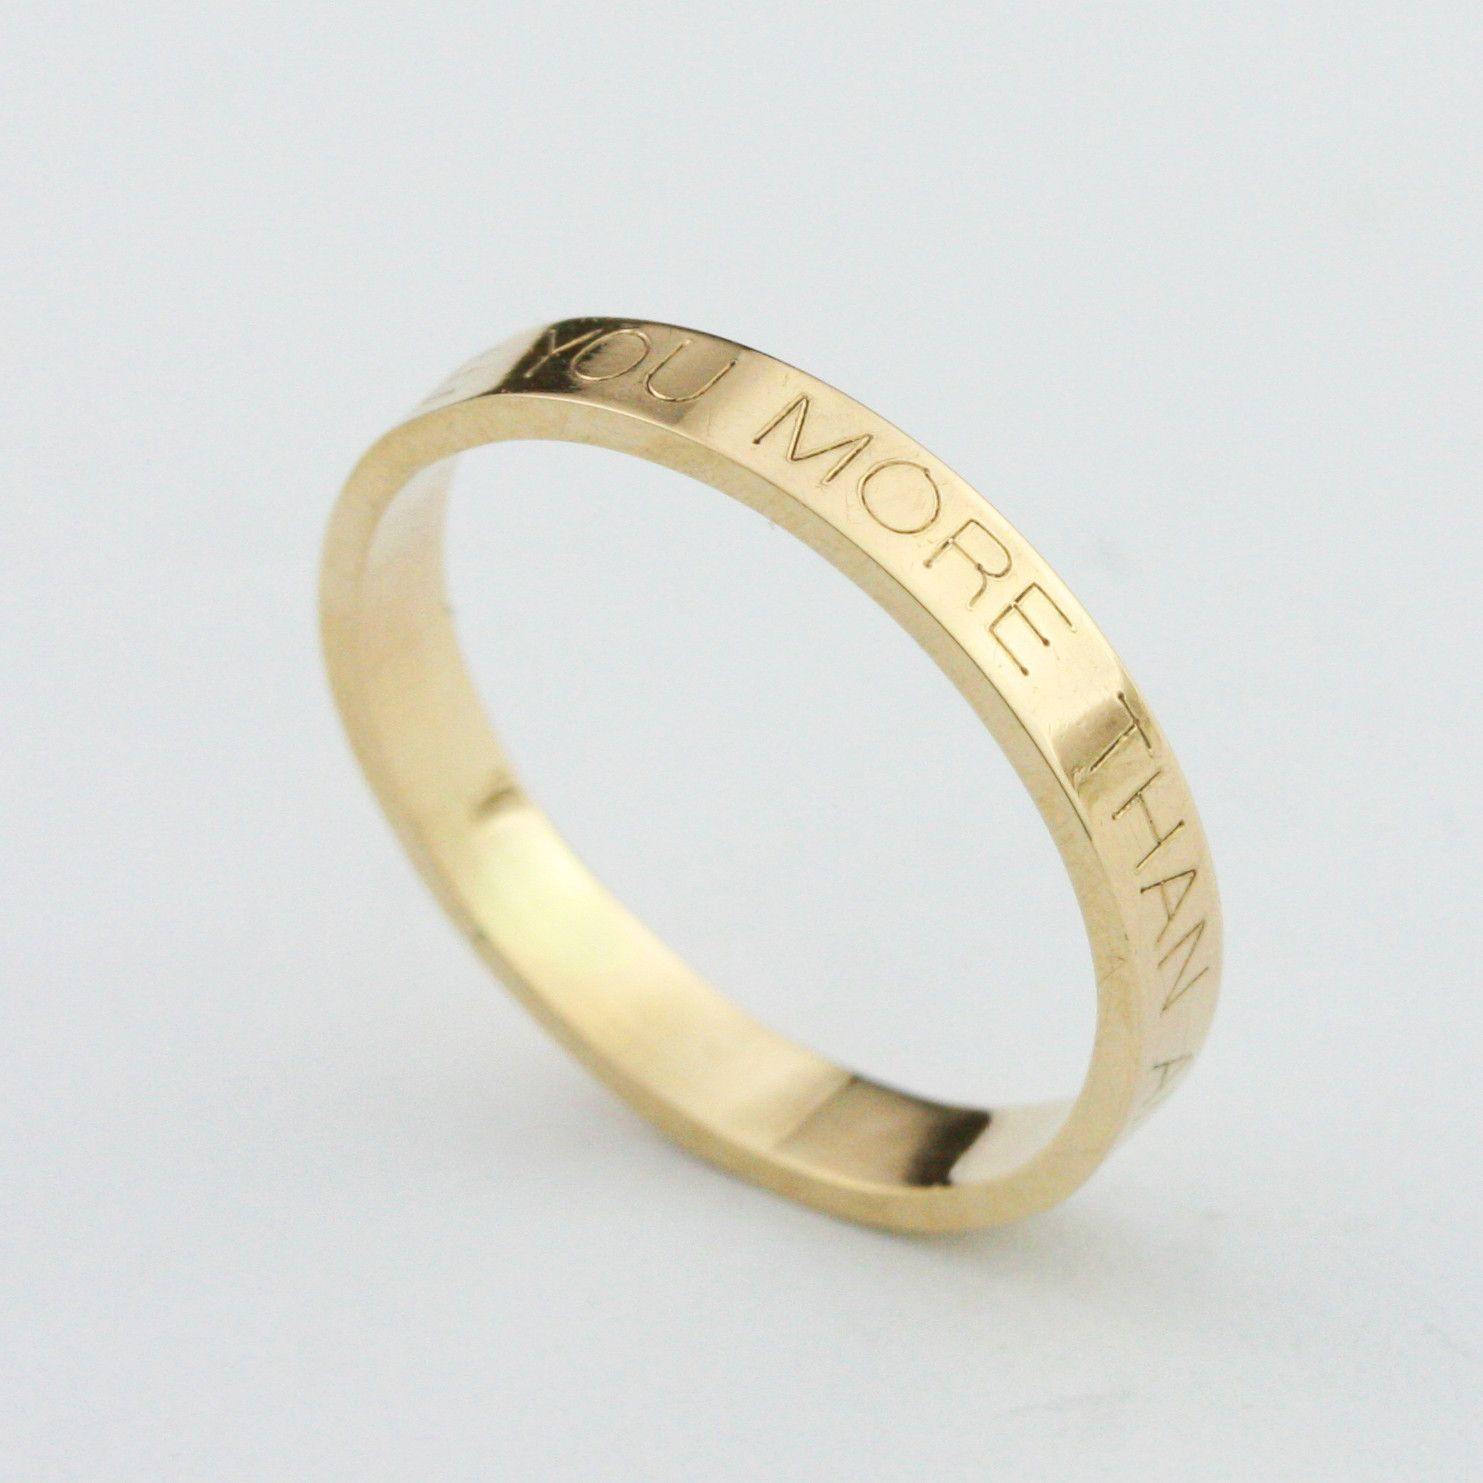 3mm Personalized Engraved Stacking Ring 14k (With images